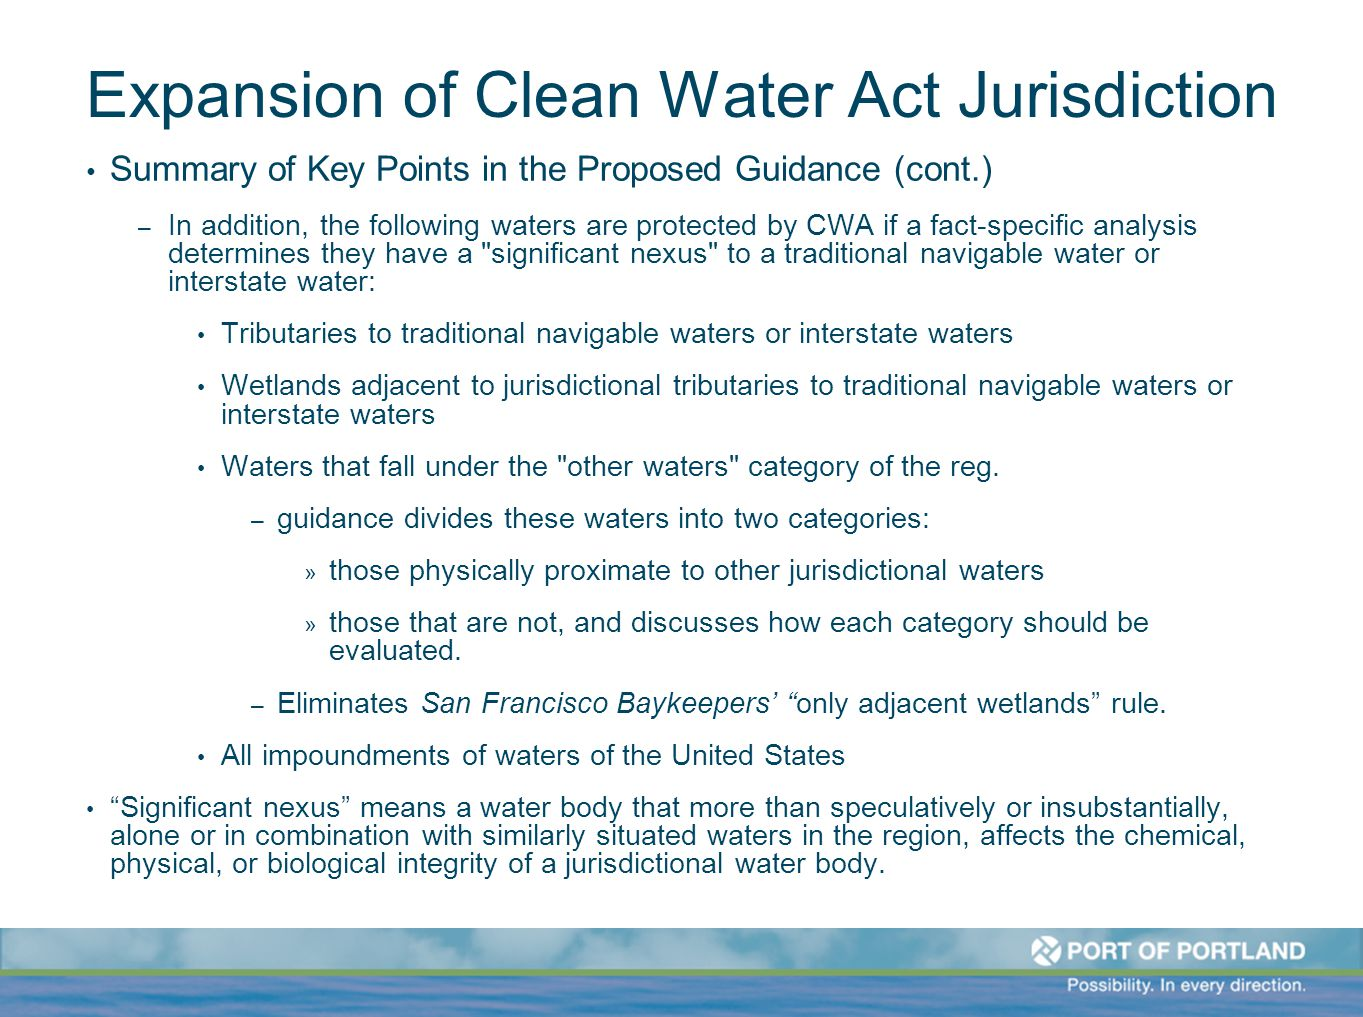 Expansion of Clean Water Act Jurisdiction Summary of Key Points in the Proposed Guidance (cont.) – In addition, the following waters are protected by